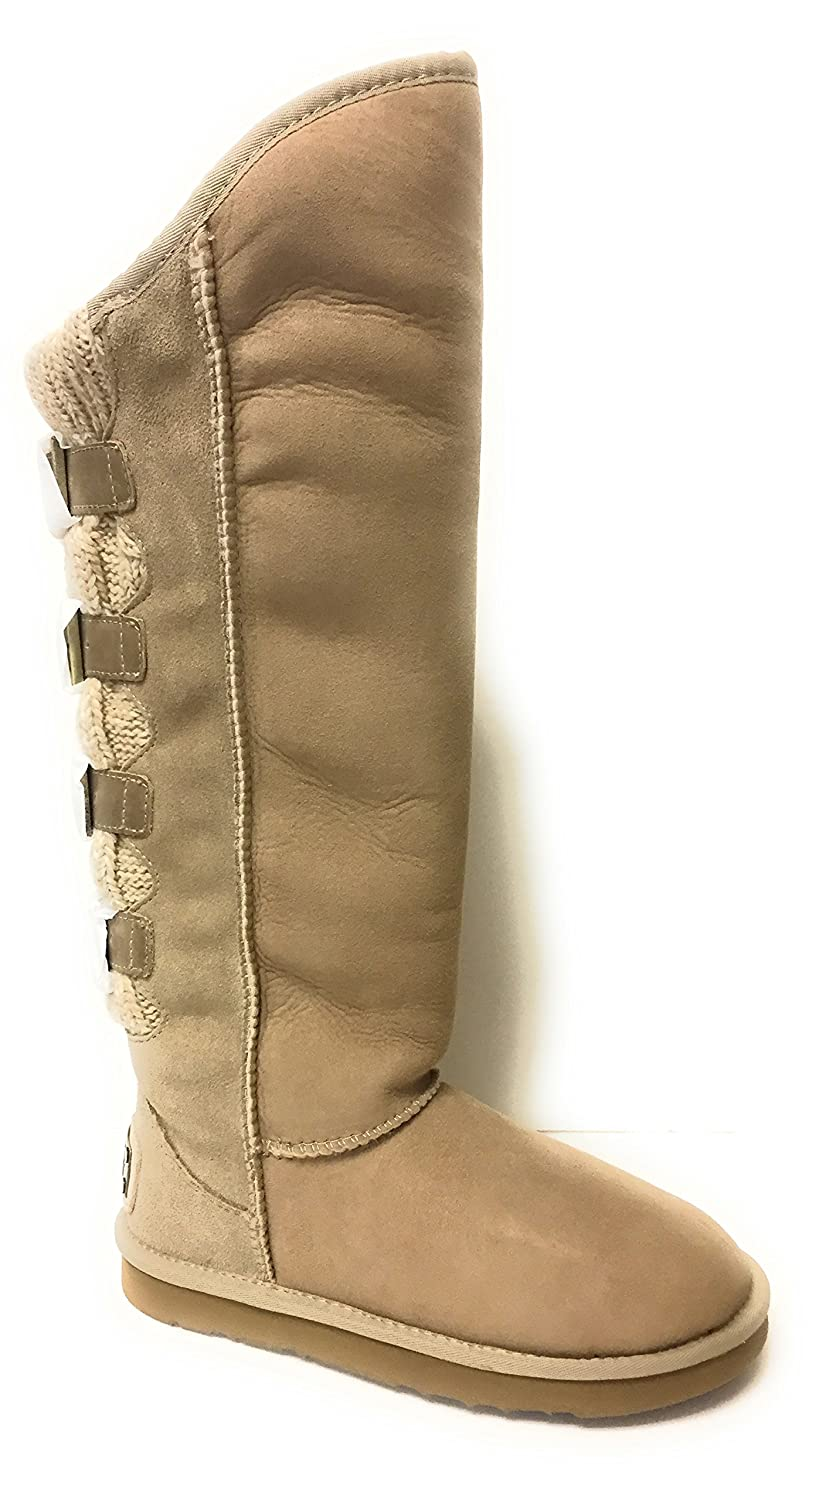 c3c4489004 Amazon.com   Australia Luxe Collective Women's Spartan Wax Knit Extra Tall  Boots Sand US Sz 6   Boots